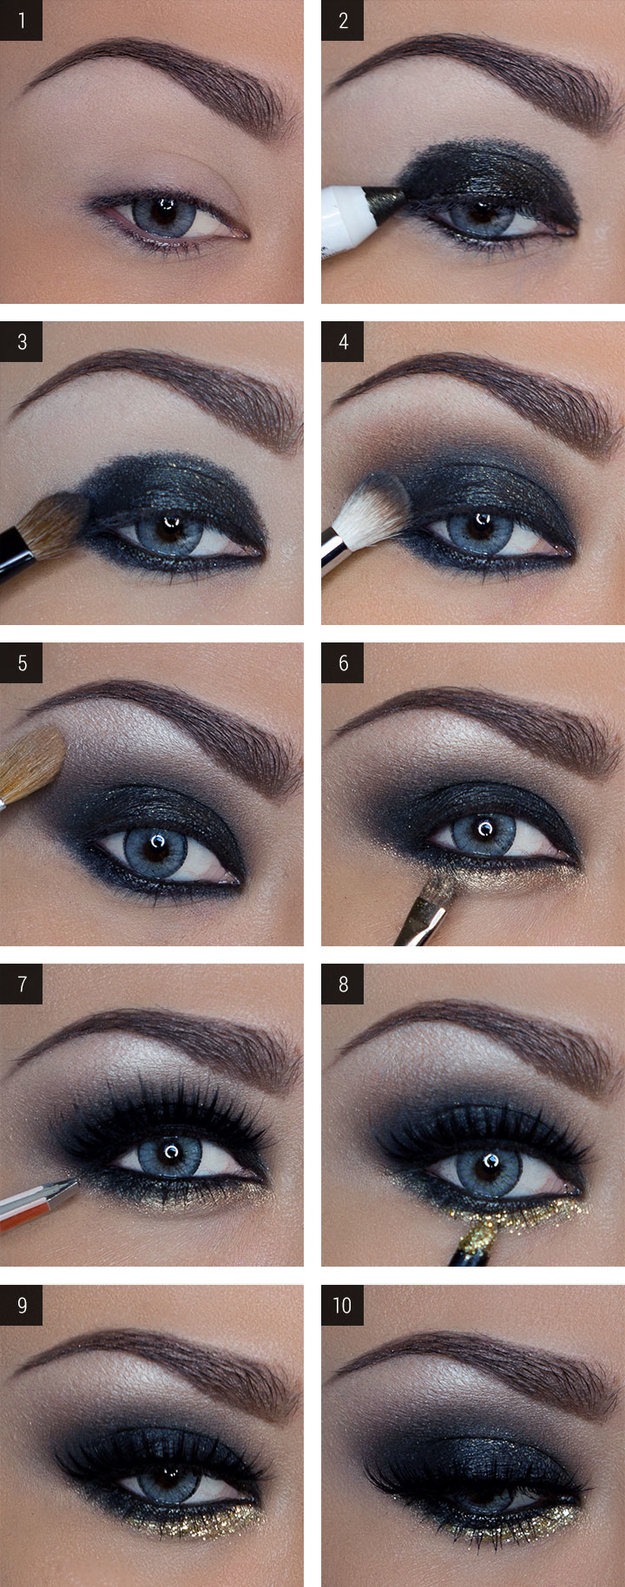 How To Do Makeup For Blue Eyes 12 Easy Step Step Makeup Tutorials For Blue Eyes Her Style Code